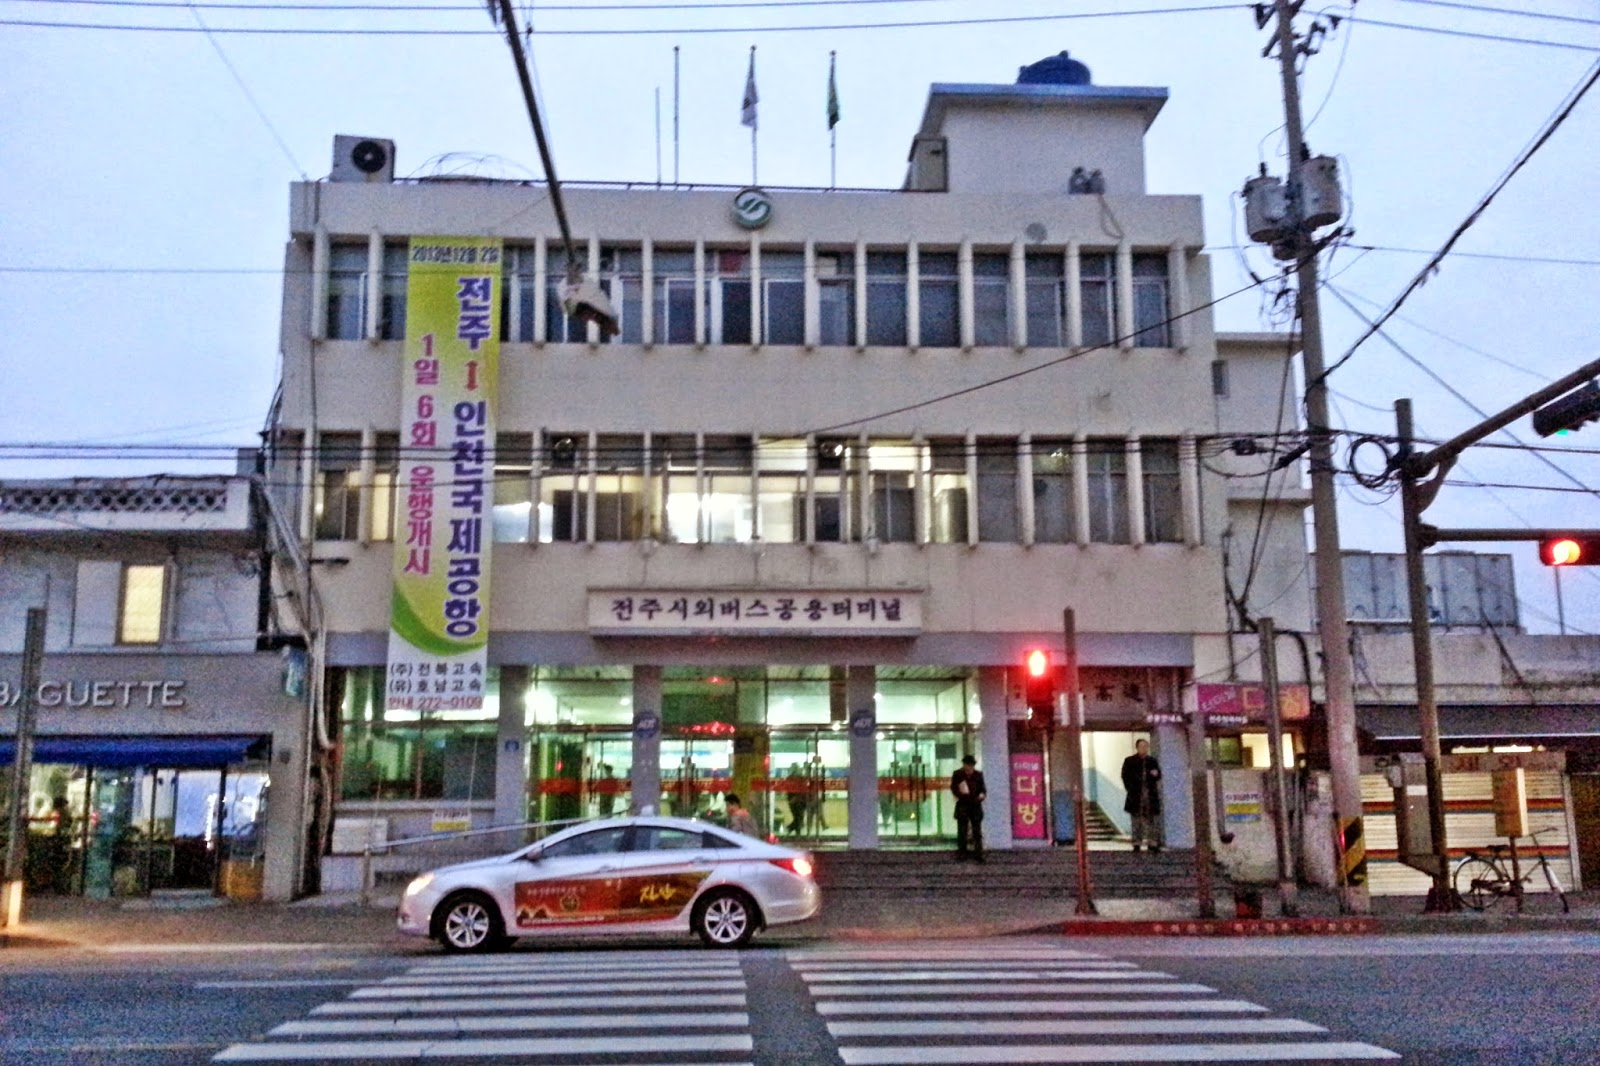 Jeonju Intercity Bus Terminal (전주시외버스터미널) | meheartseoul.blogspot.com